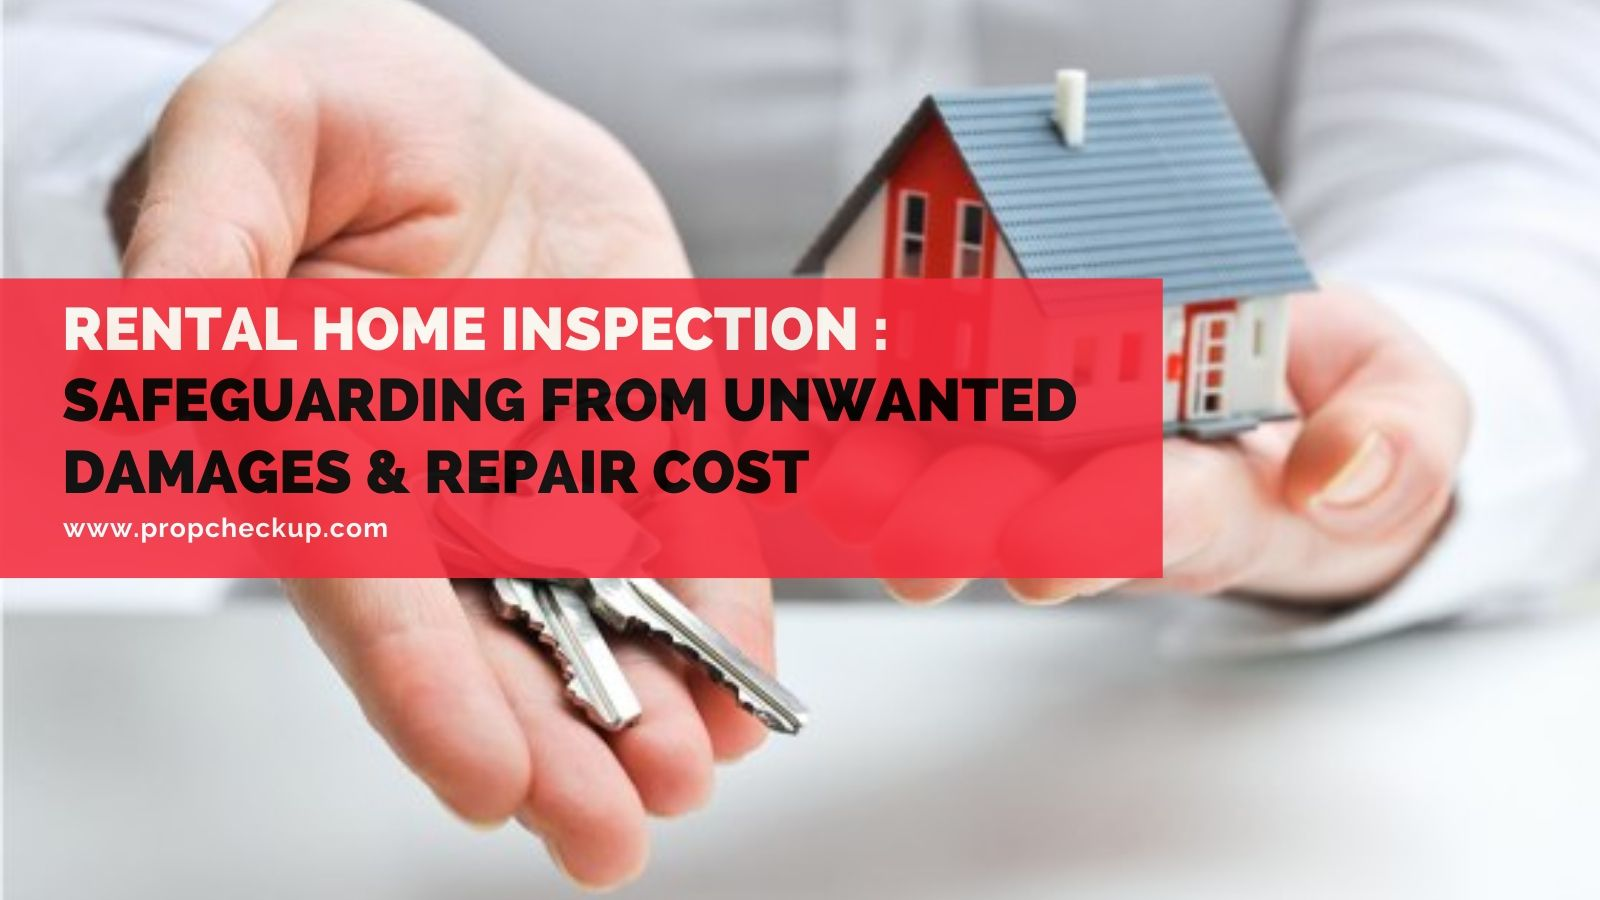 Rental home inspection safeguarding From Unwanted Damages